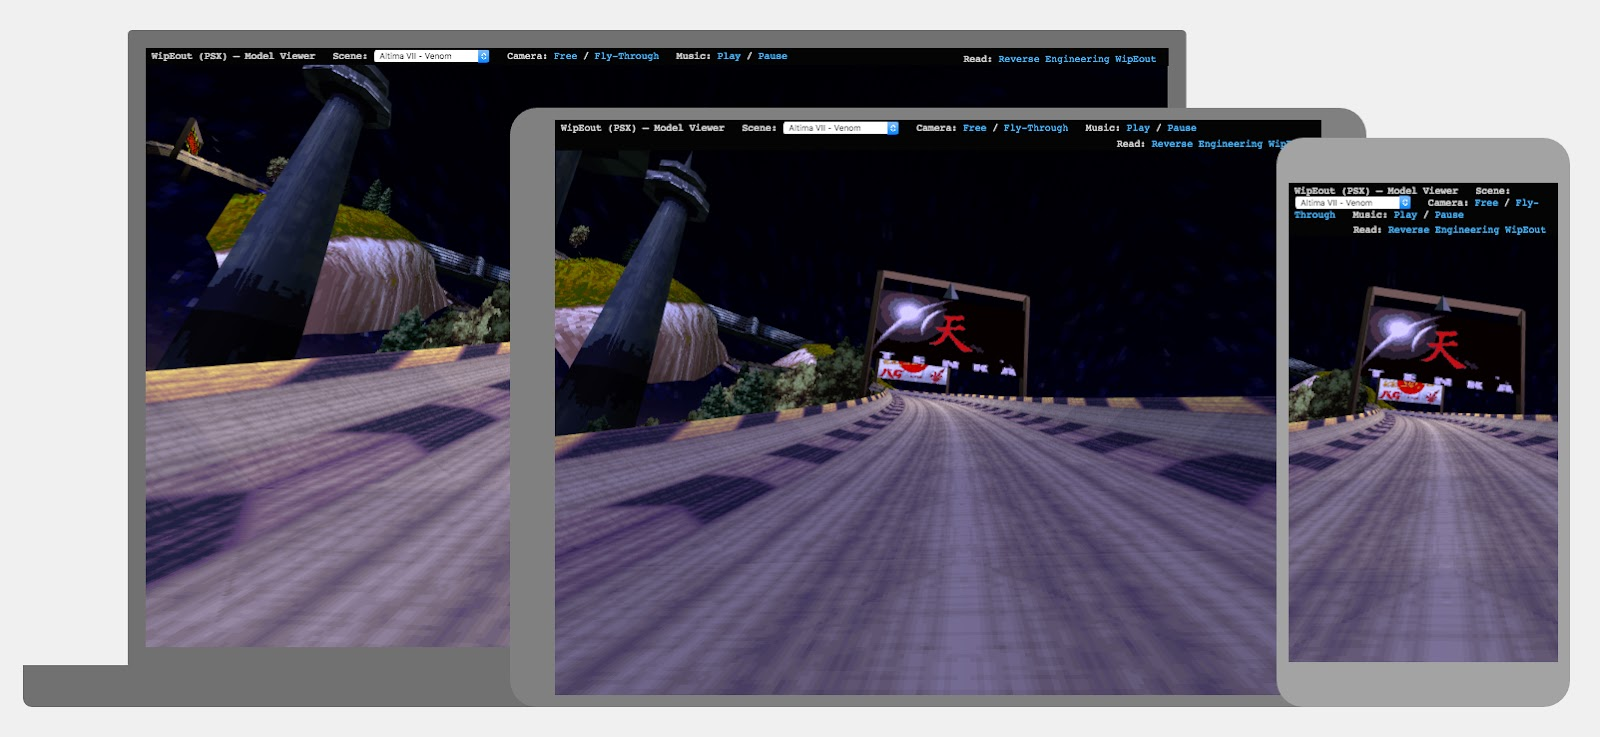 Wipeout PSX homepage